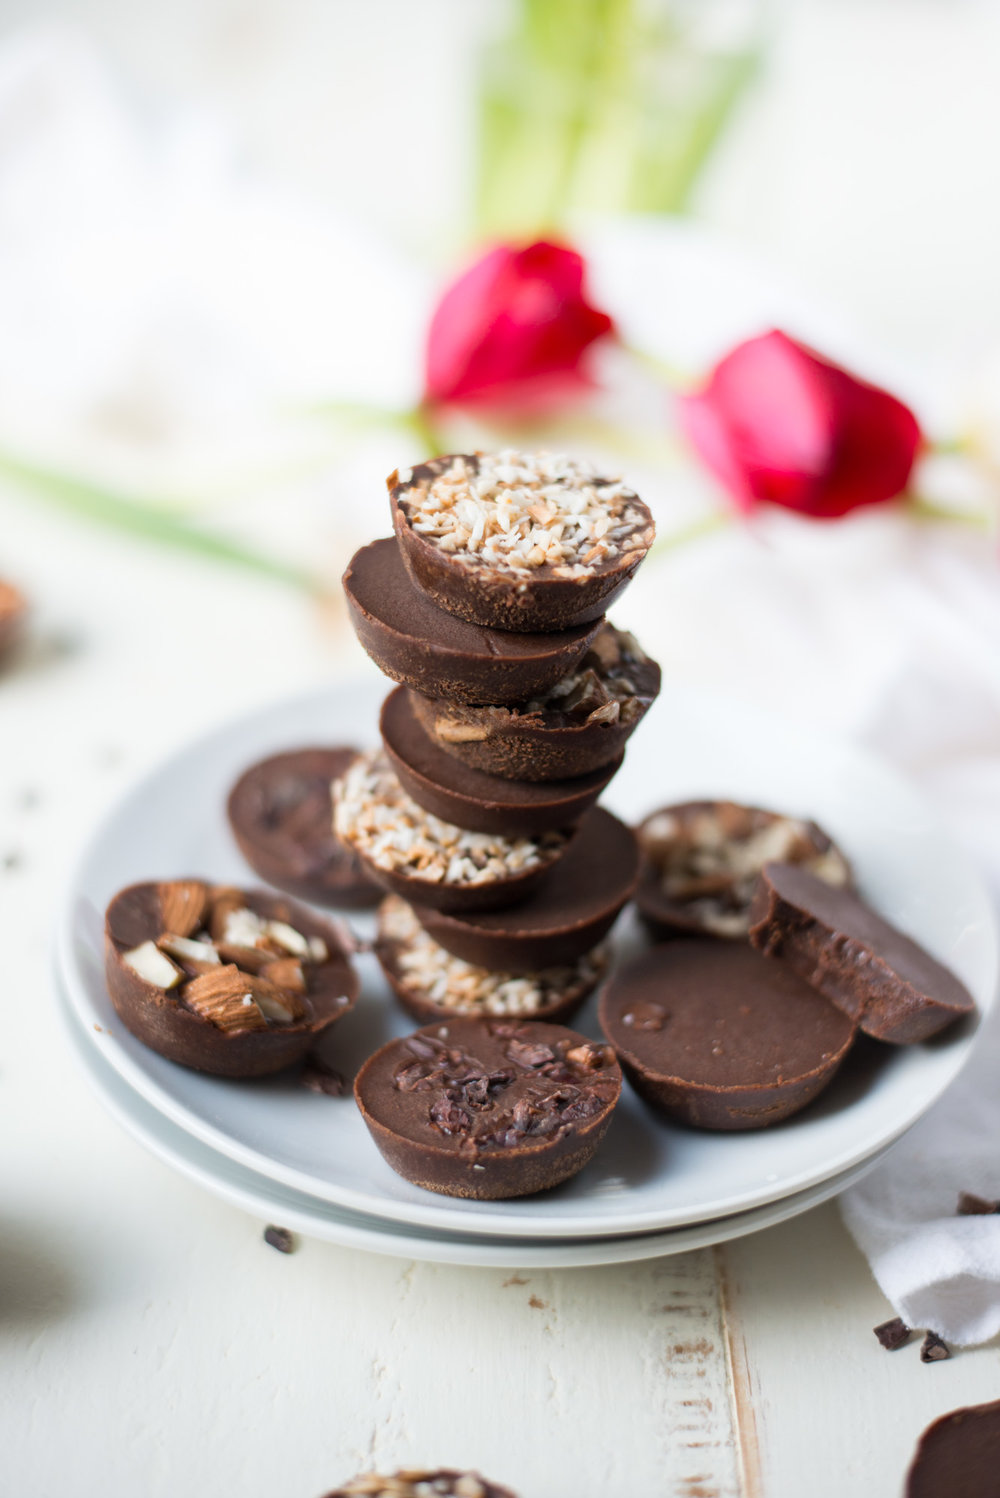 A few simple ingredients combine in these decadent, naturally-sweetened, 5-Ingredient Joyful Chocolate Bites.